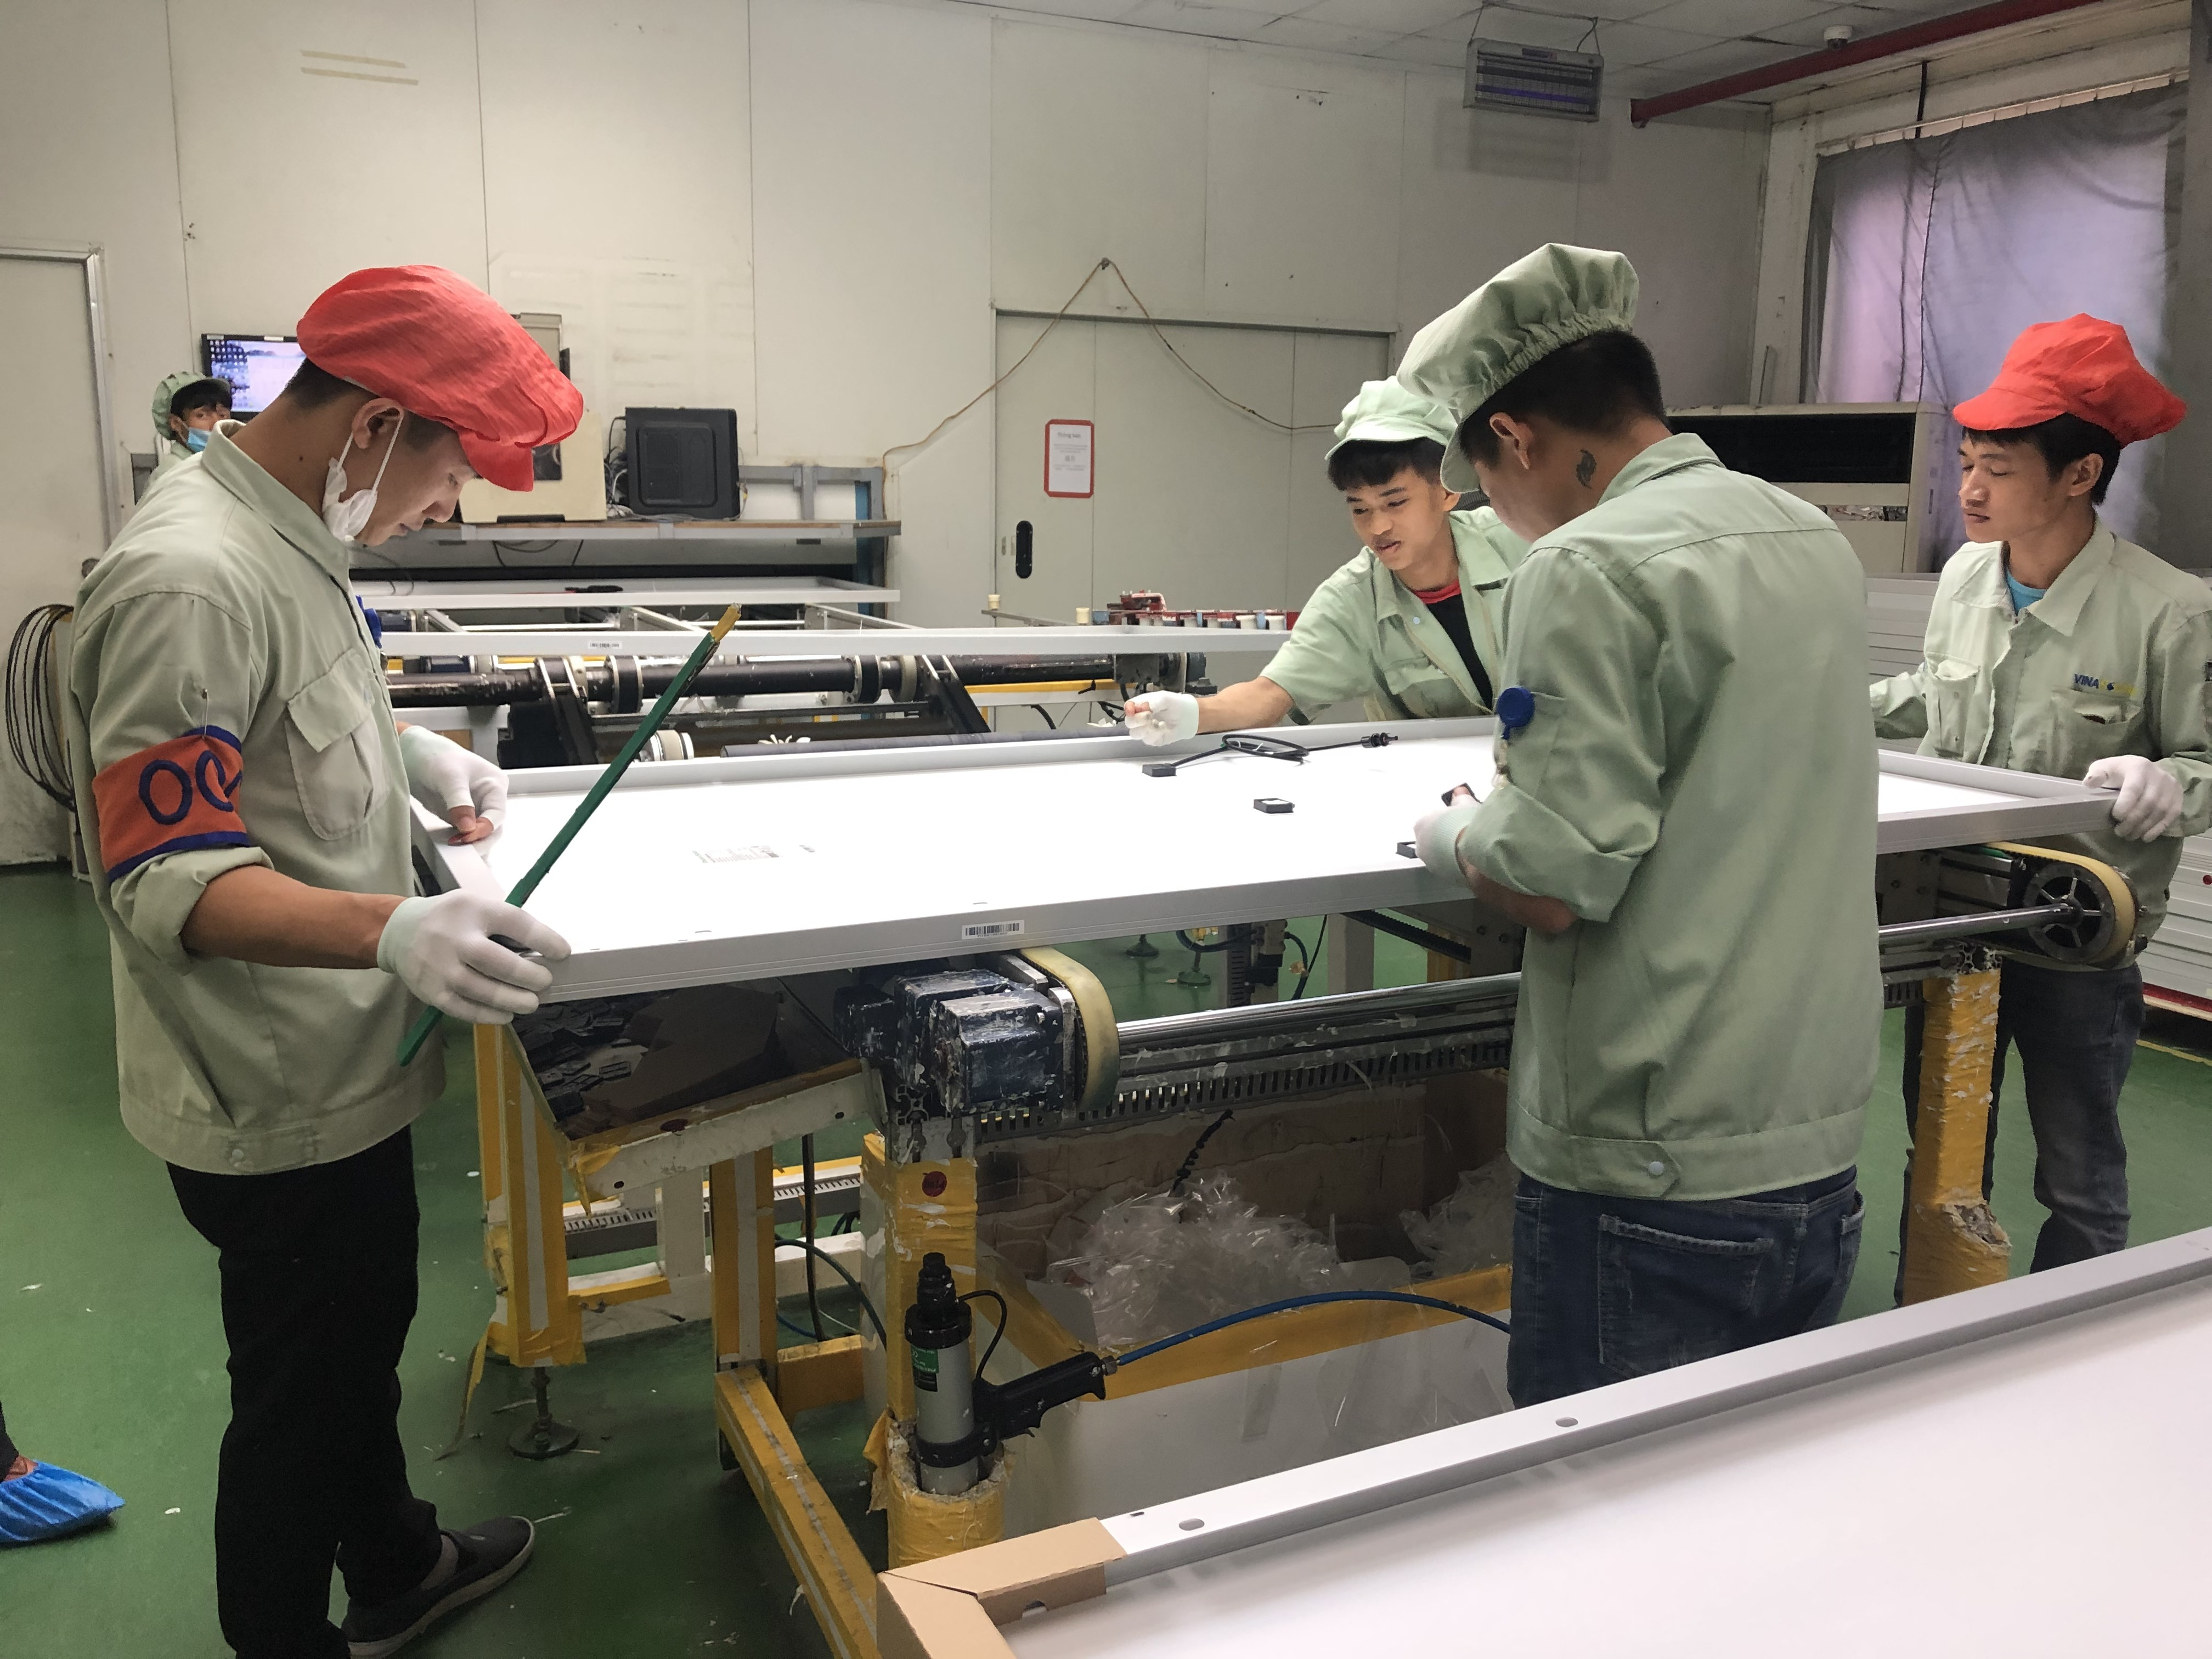 China's textile capital Suzhou was struggling before the